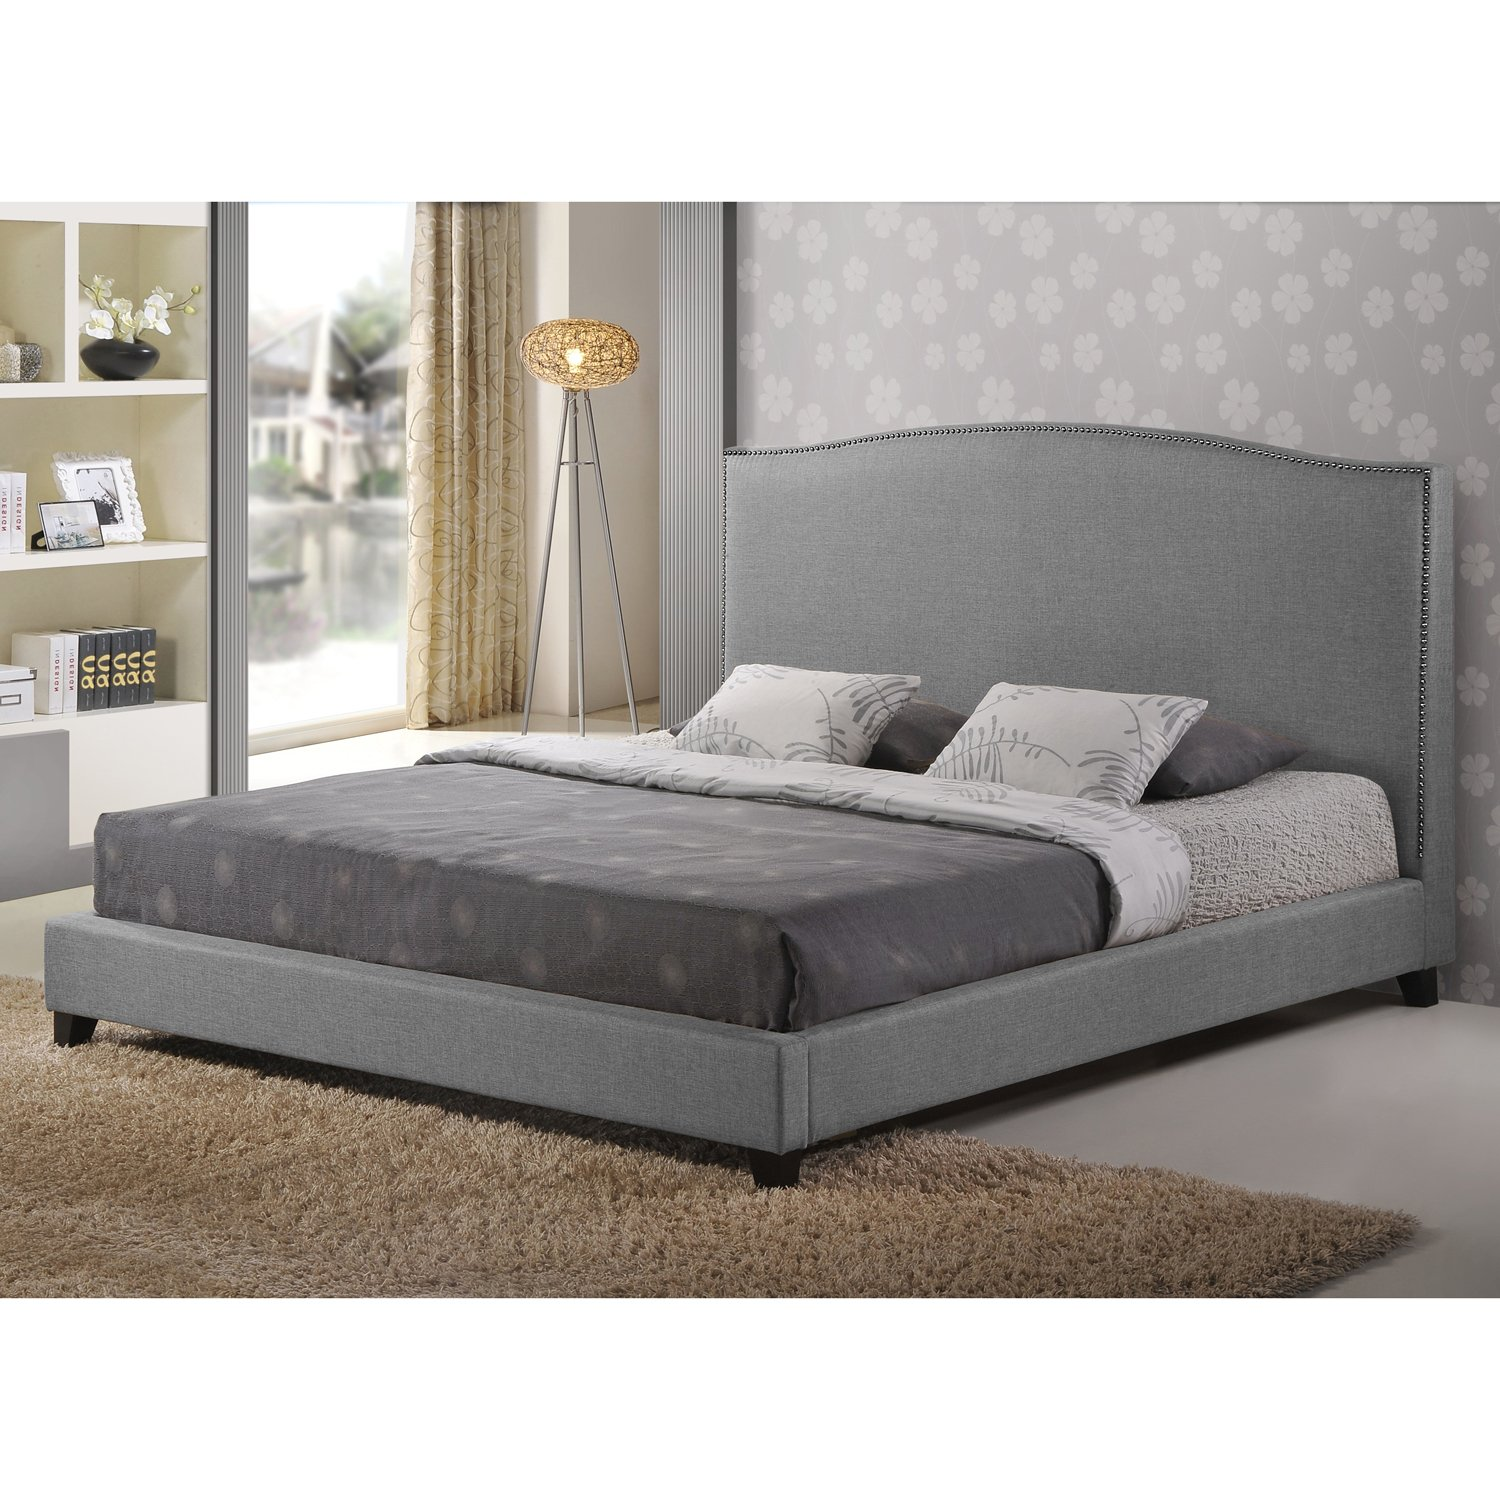 also trends gallery platform size queen upholstered button including bed images white and hera leather collection with tufted ideas of